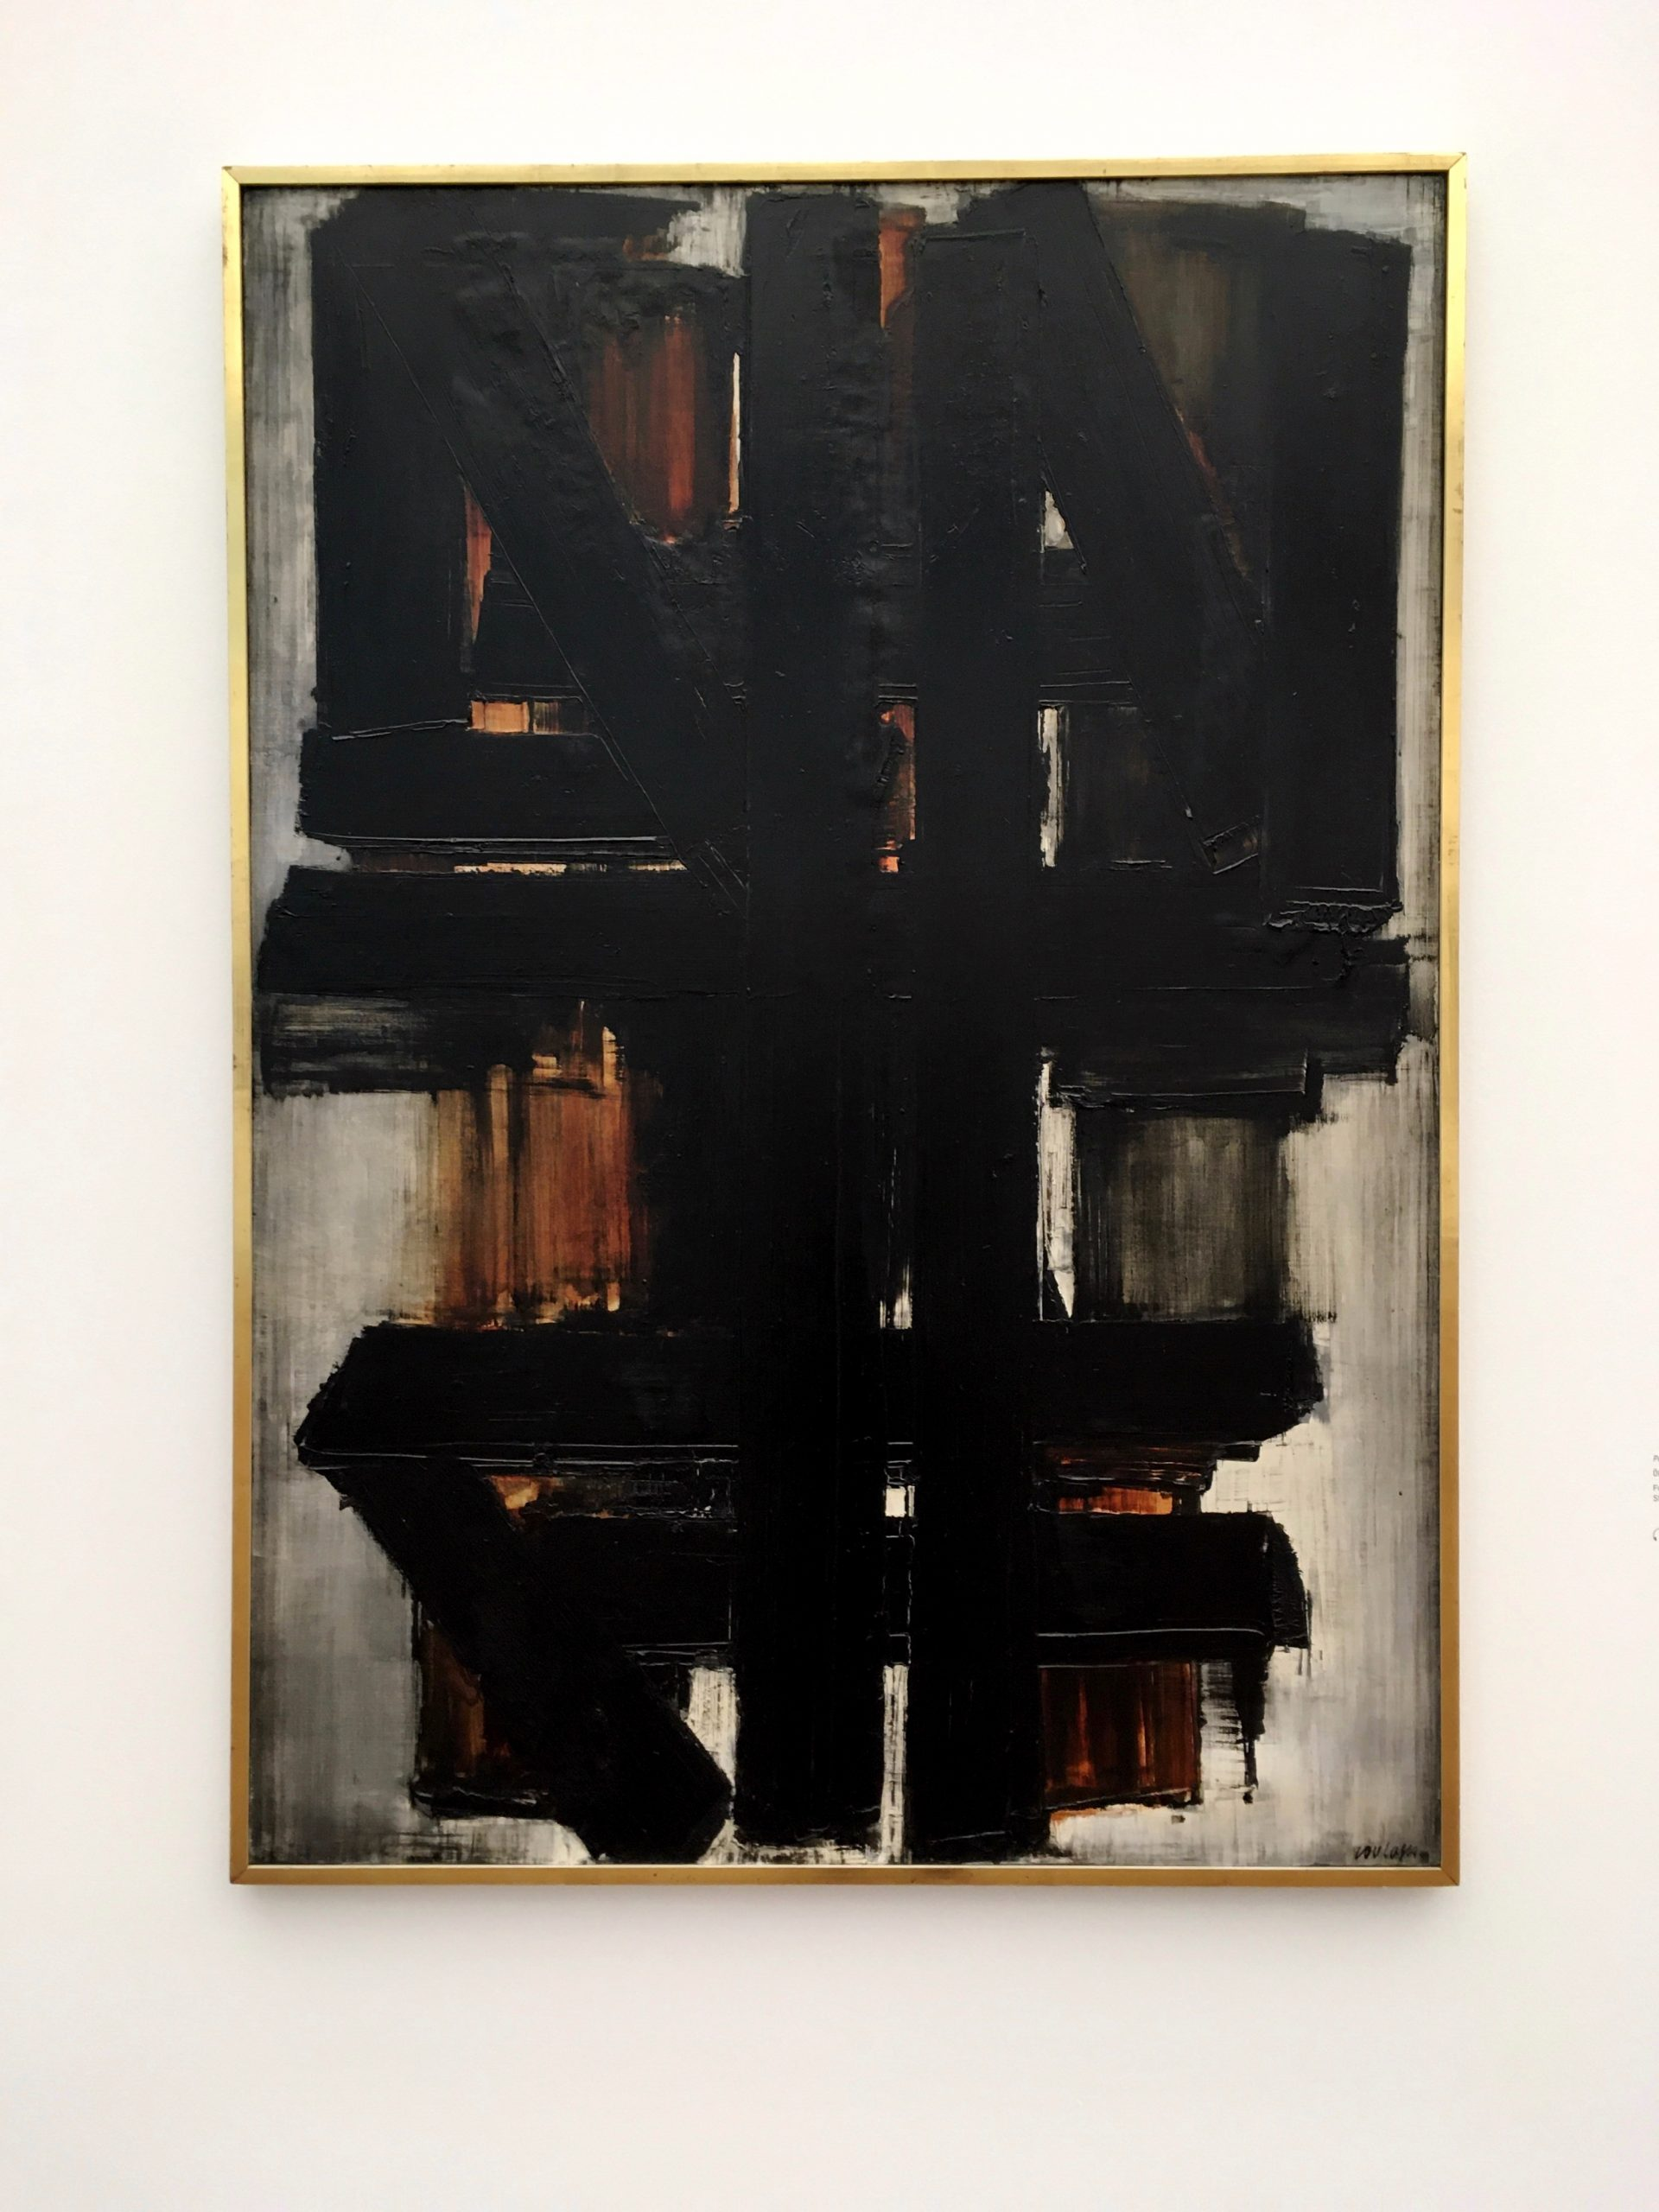 soulages_frieder burda_1956